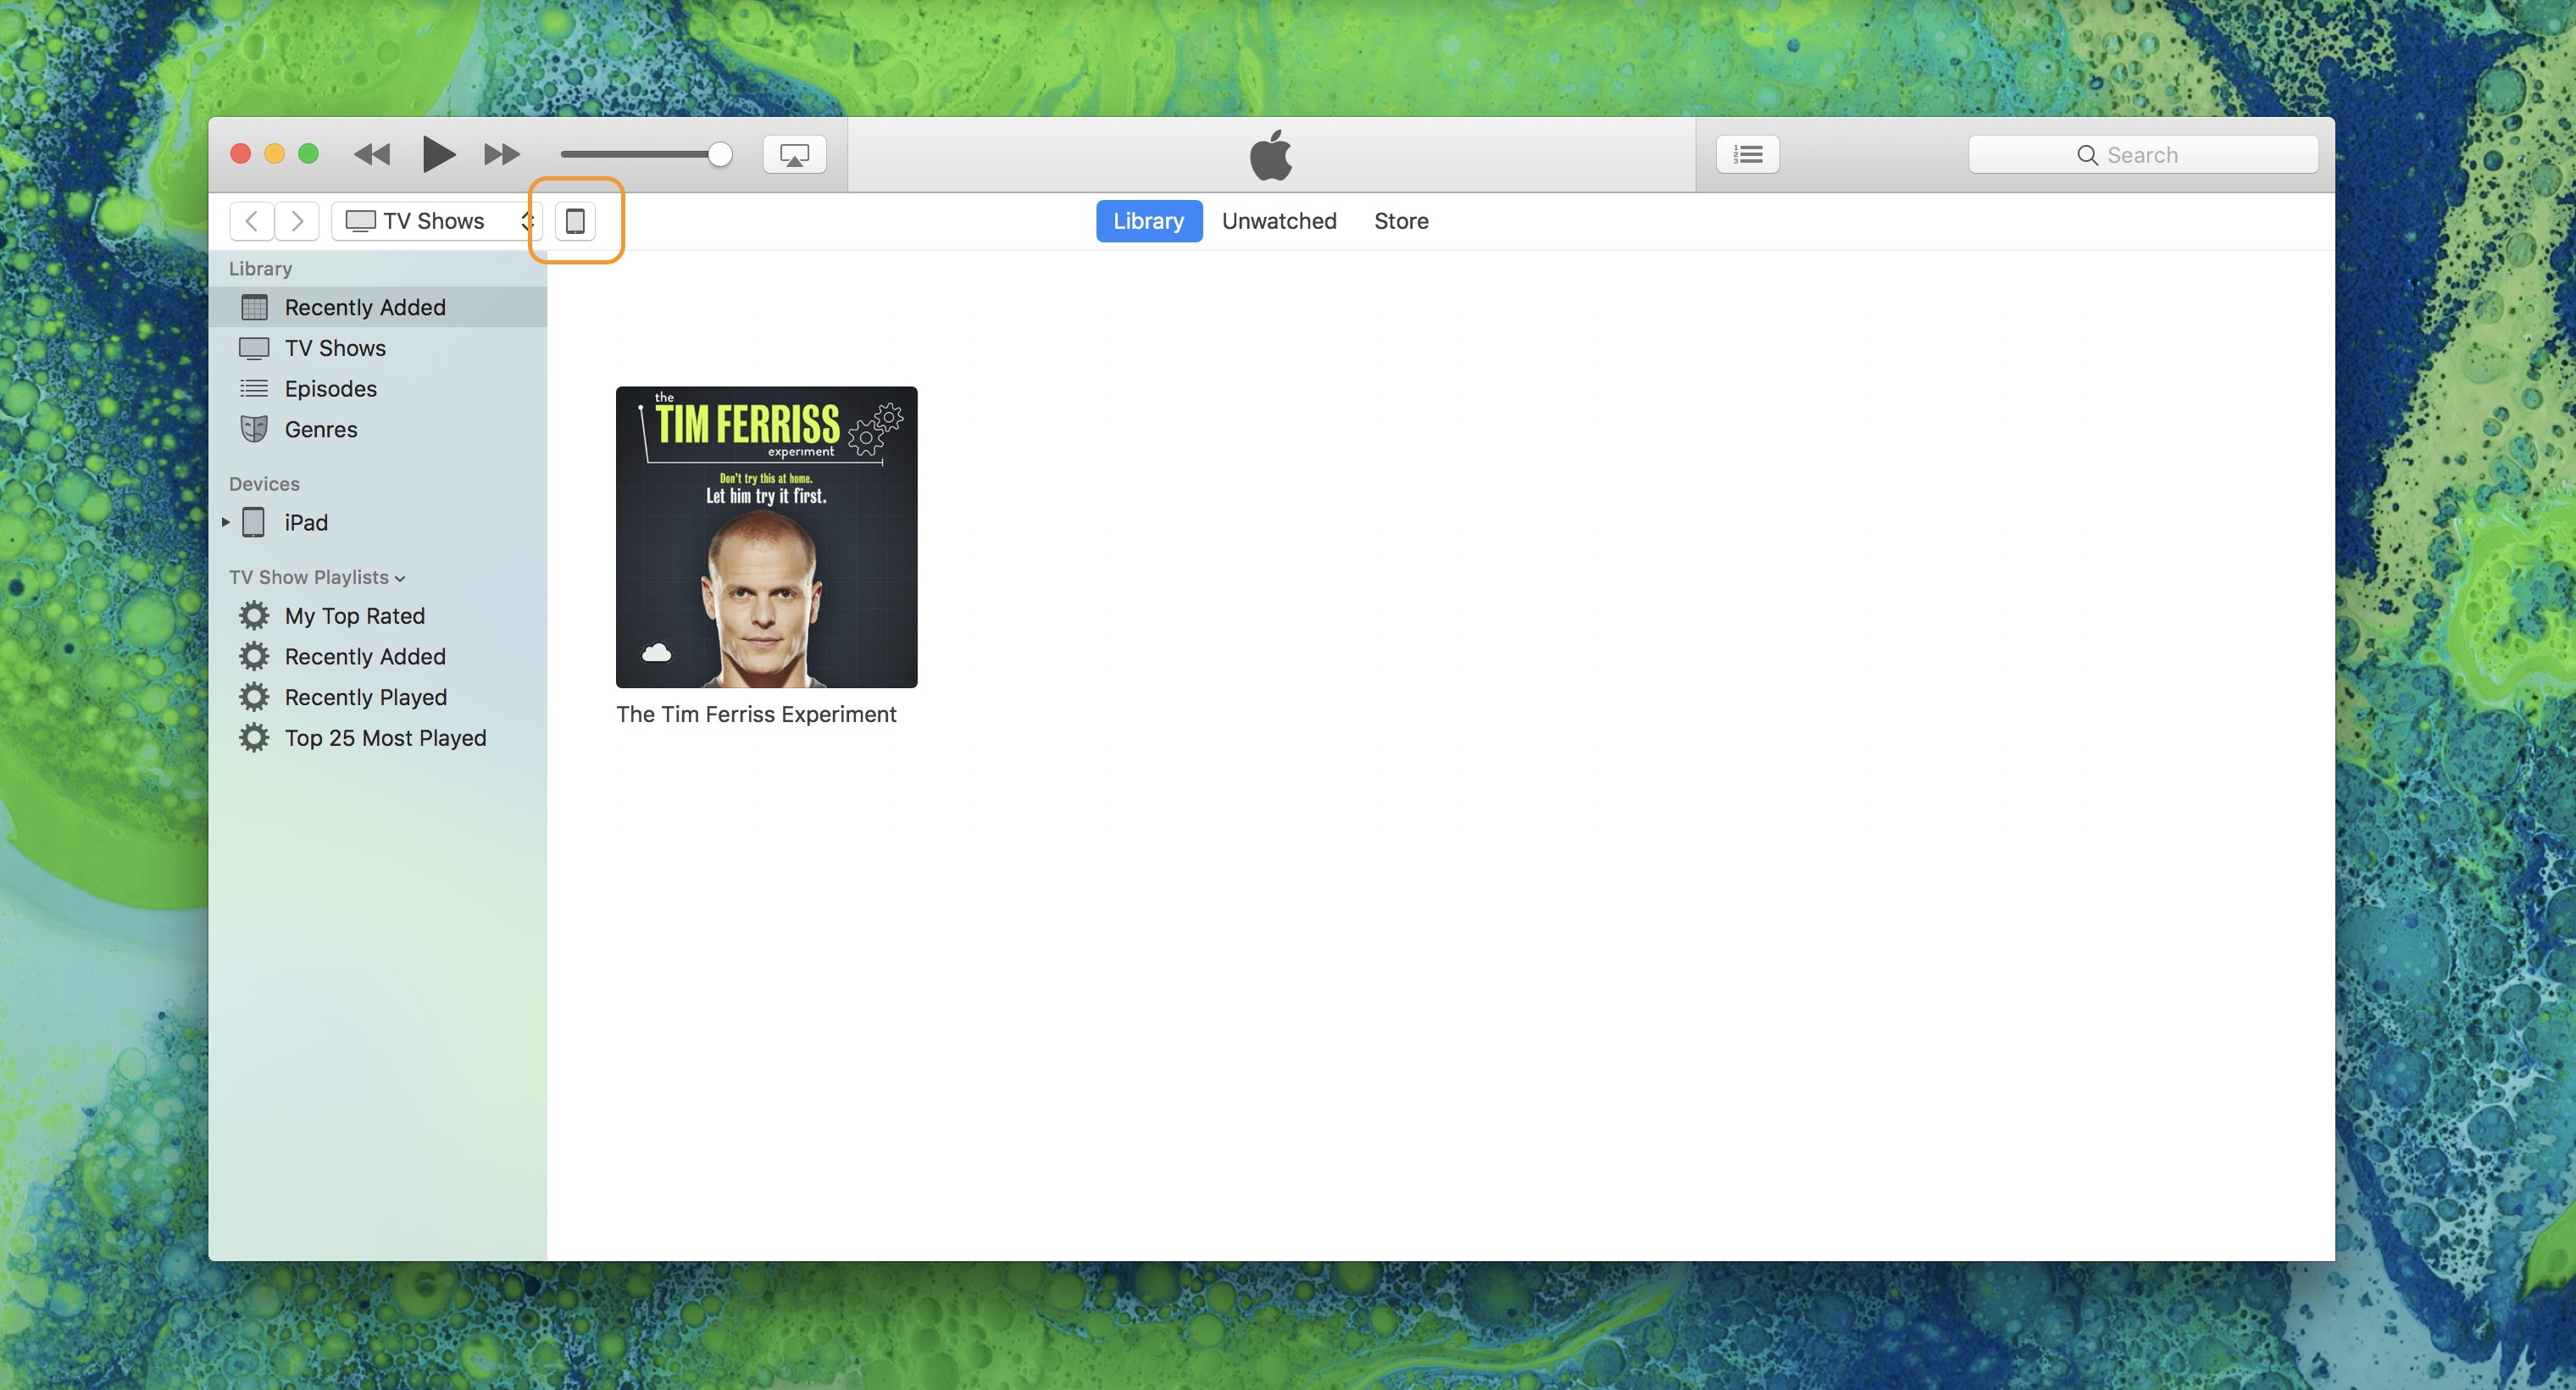 Image showing the iPad icon in iTunes to open the iPad Summary page